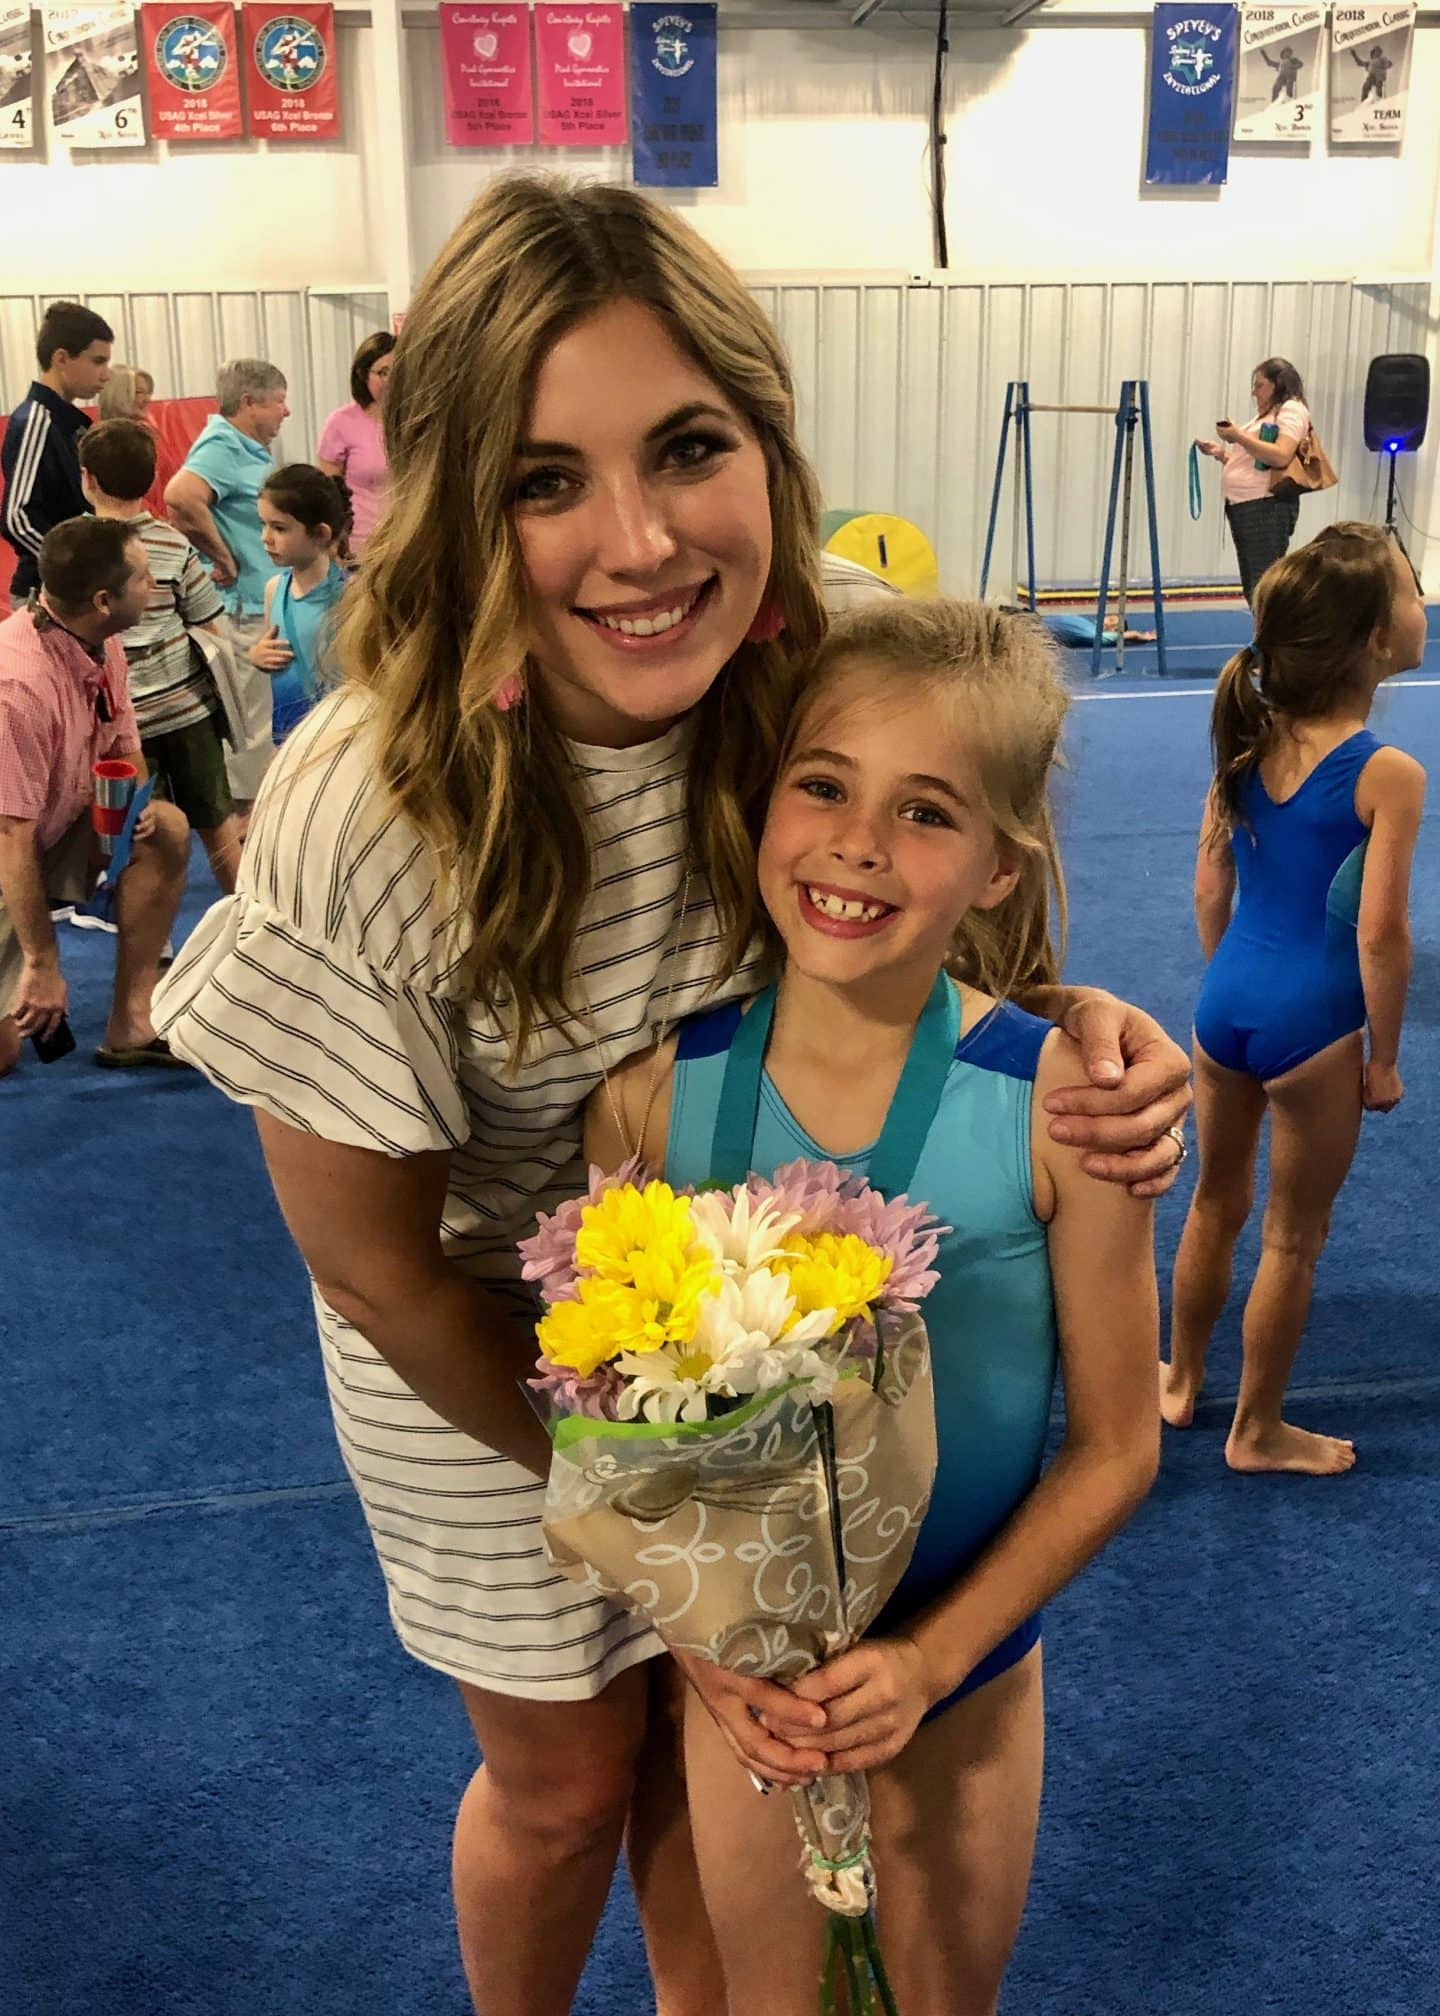 family support at gymnastics